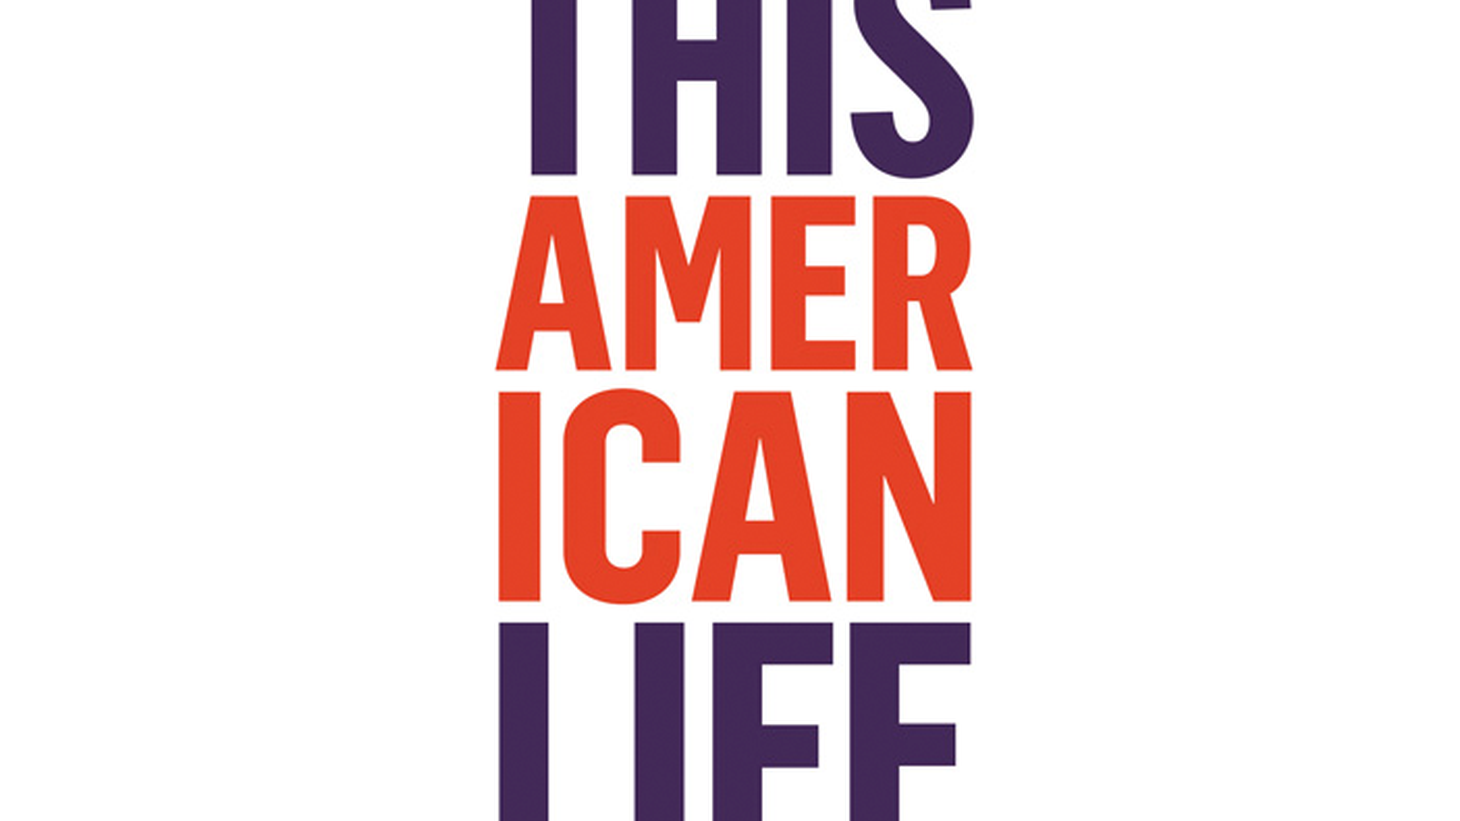 Celebrate the Fourth of July with an all-day marathon of &quotThis American Life.&quot The marvelous characters, the odd and eccentric personalities who tell us strange tales which we somehow all recognize, the touching moments that happen in the most unlikely of circumstances, the element of the unexpected and the surprising - the signature sound of This American Life.  The shows to be broadcast are &quotPray,&quot &quotPimp Anthology,&quot &quotLast Words,&quot &quotNotes  on Camp,&quot &quotName Change,&quot &quotFirst Day,&quot &quotWelcome to America,&quot and &quotDouble Lives.&quot  Join David Sedaris, Sarah Vowell, Dan Savage, Sandra Tsing Loh, and other favorites in this special 8-hour production beginning Monday, July 5, at 9 am.